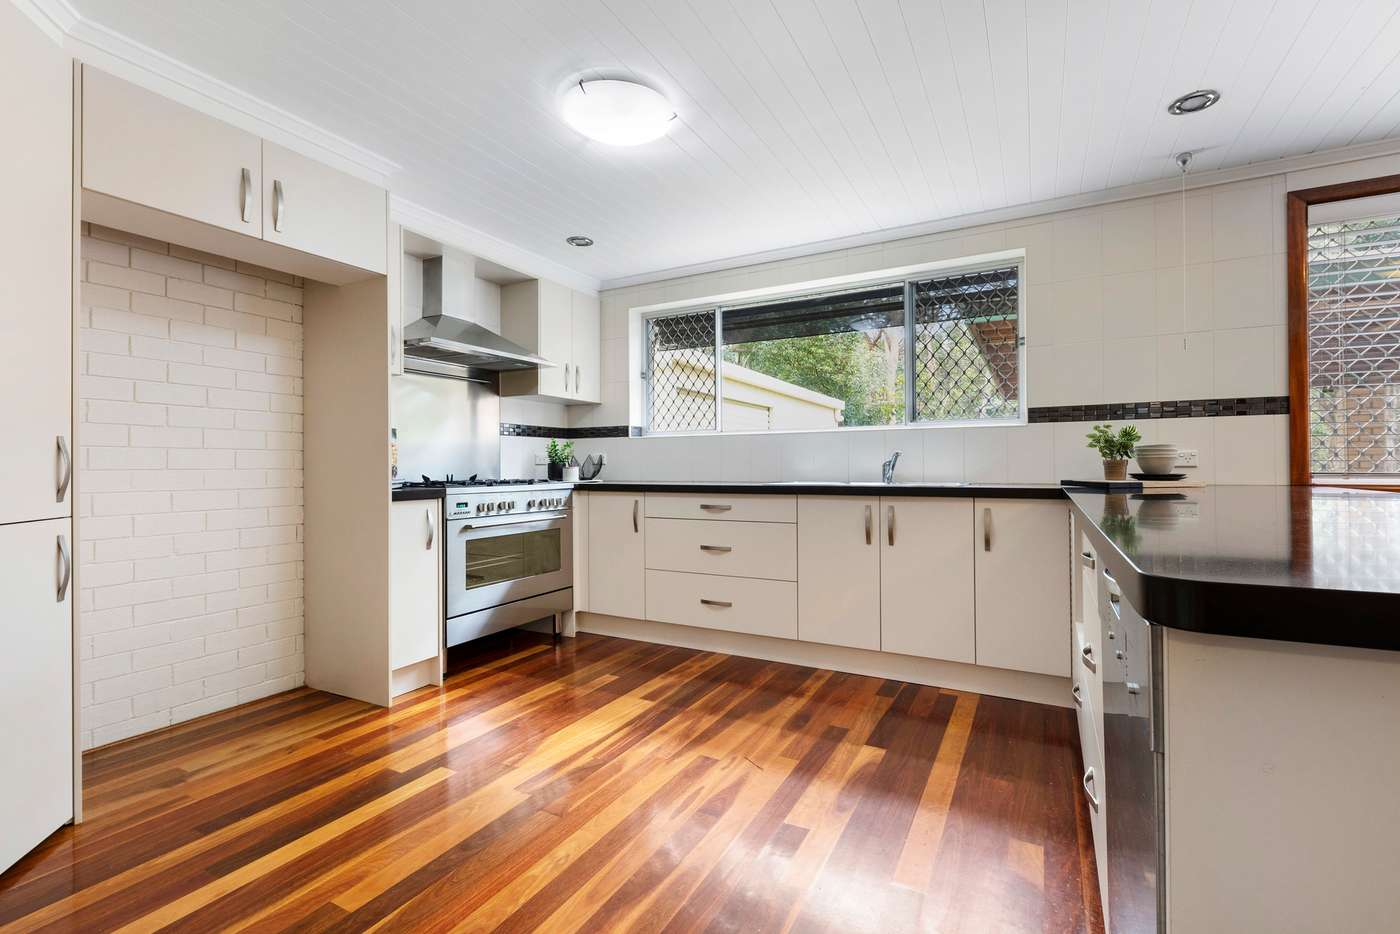 Fifth view of Homely house listing, 254 Gallipoli Road, Carina Heights QLD 4152